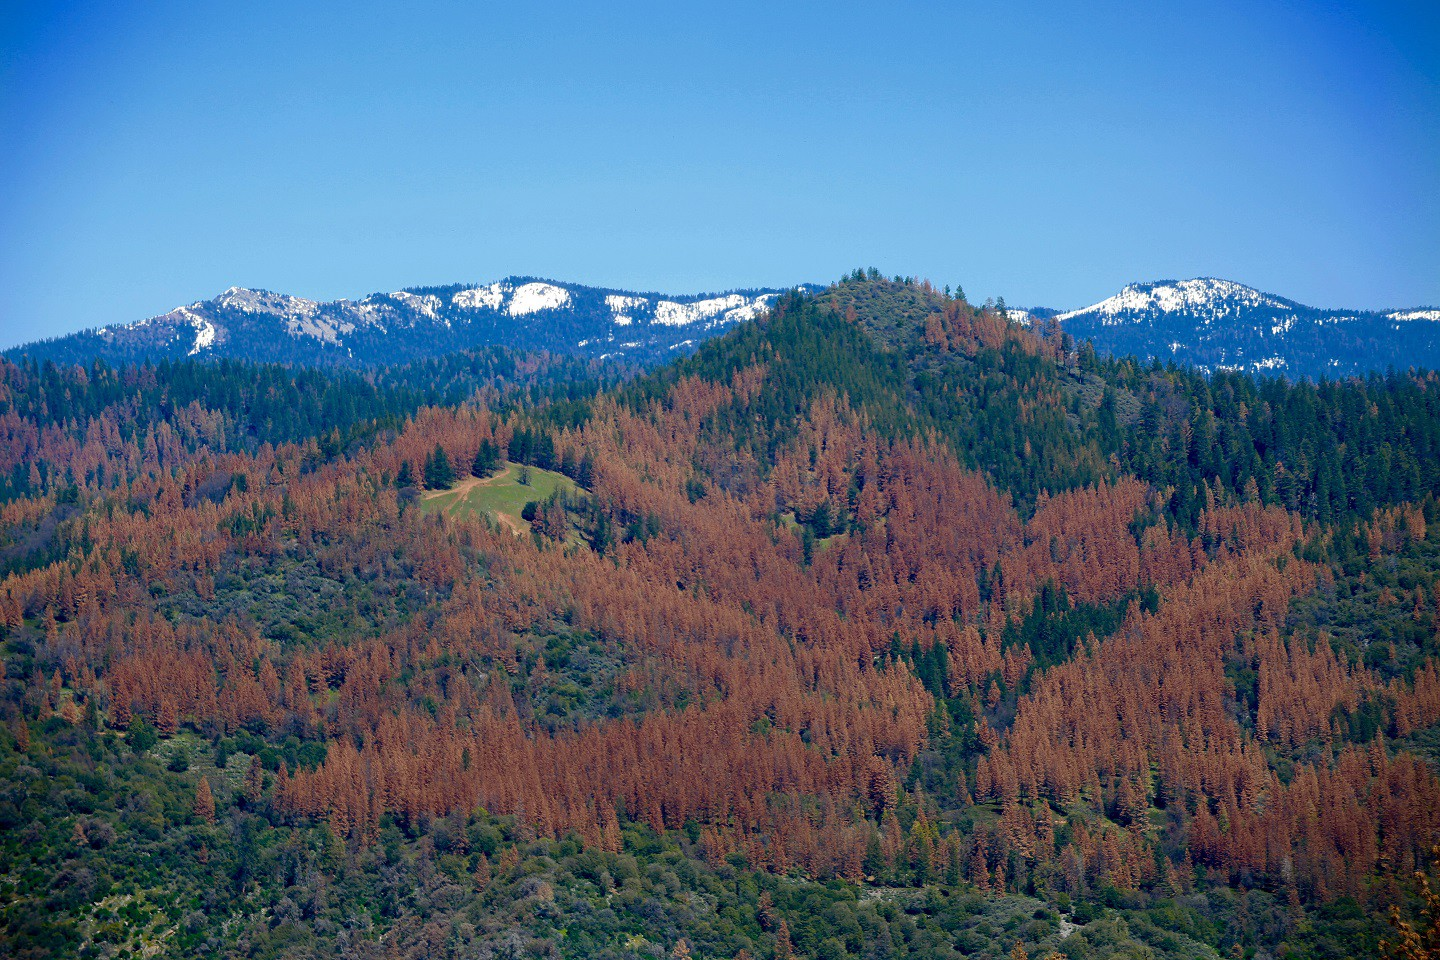 The warm glow of death: the terrifying climate truth behind California's fall forest colors